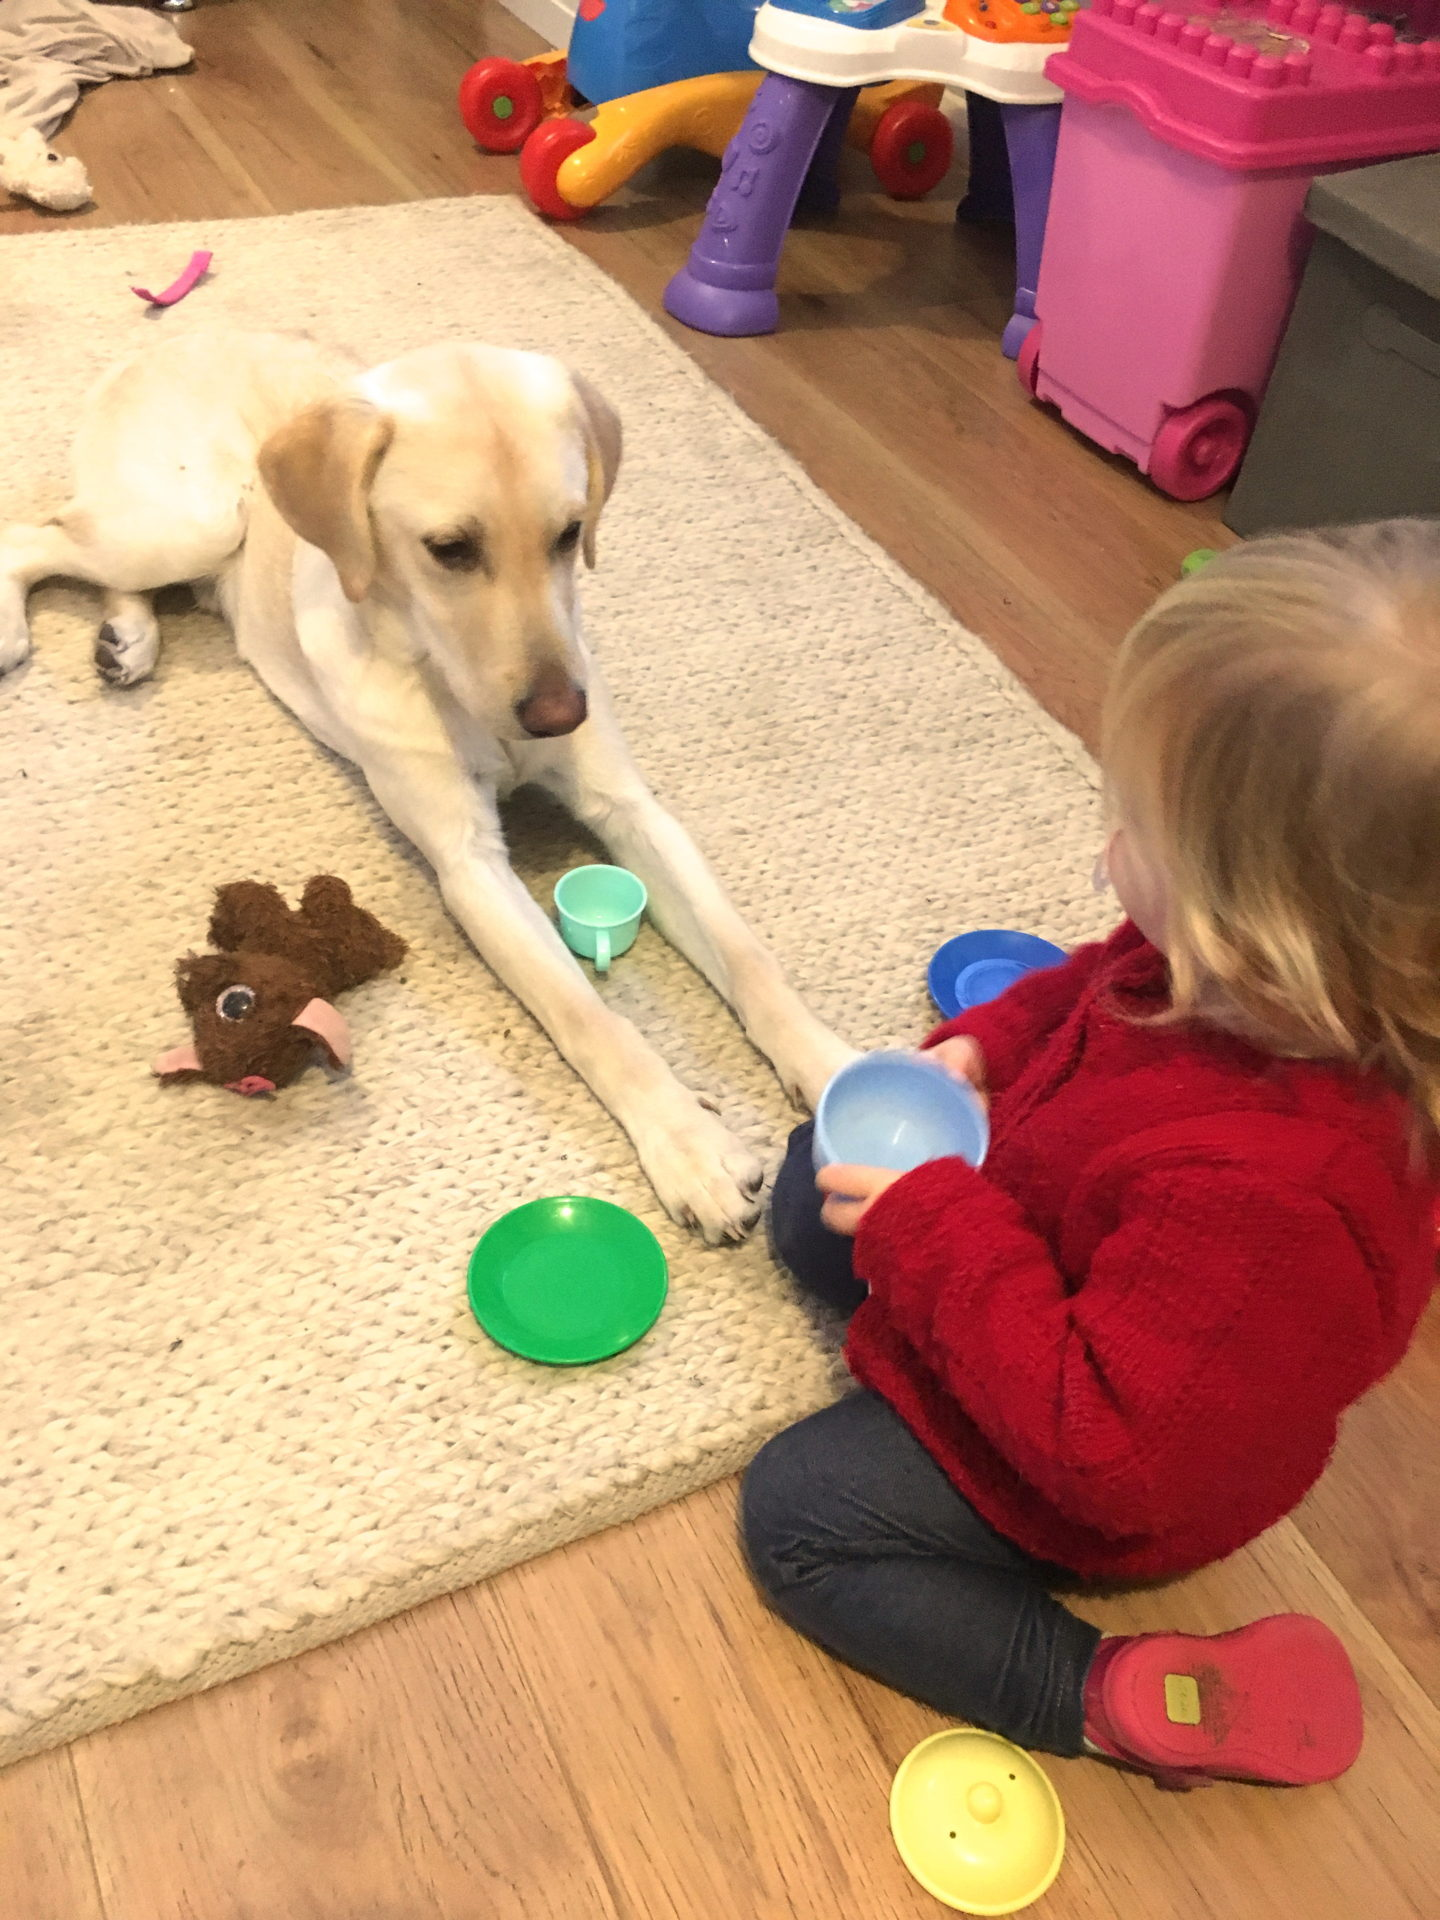 22 months old girl playing tea parties with a yellow labrador